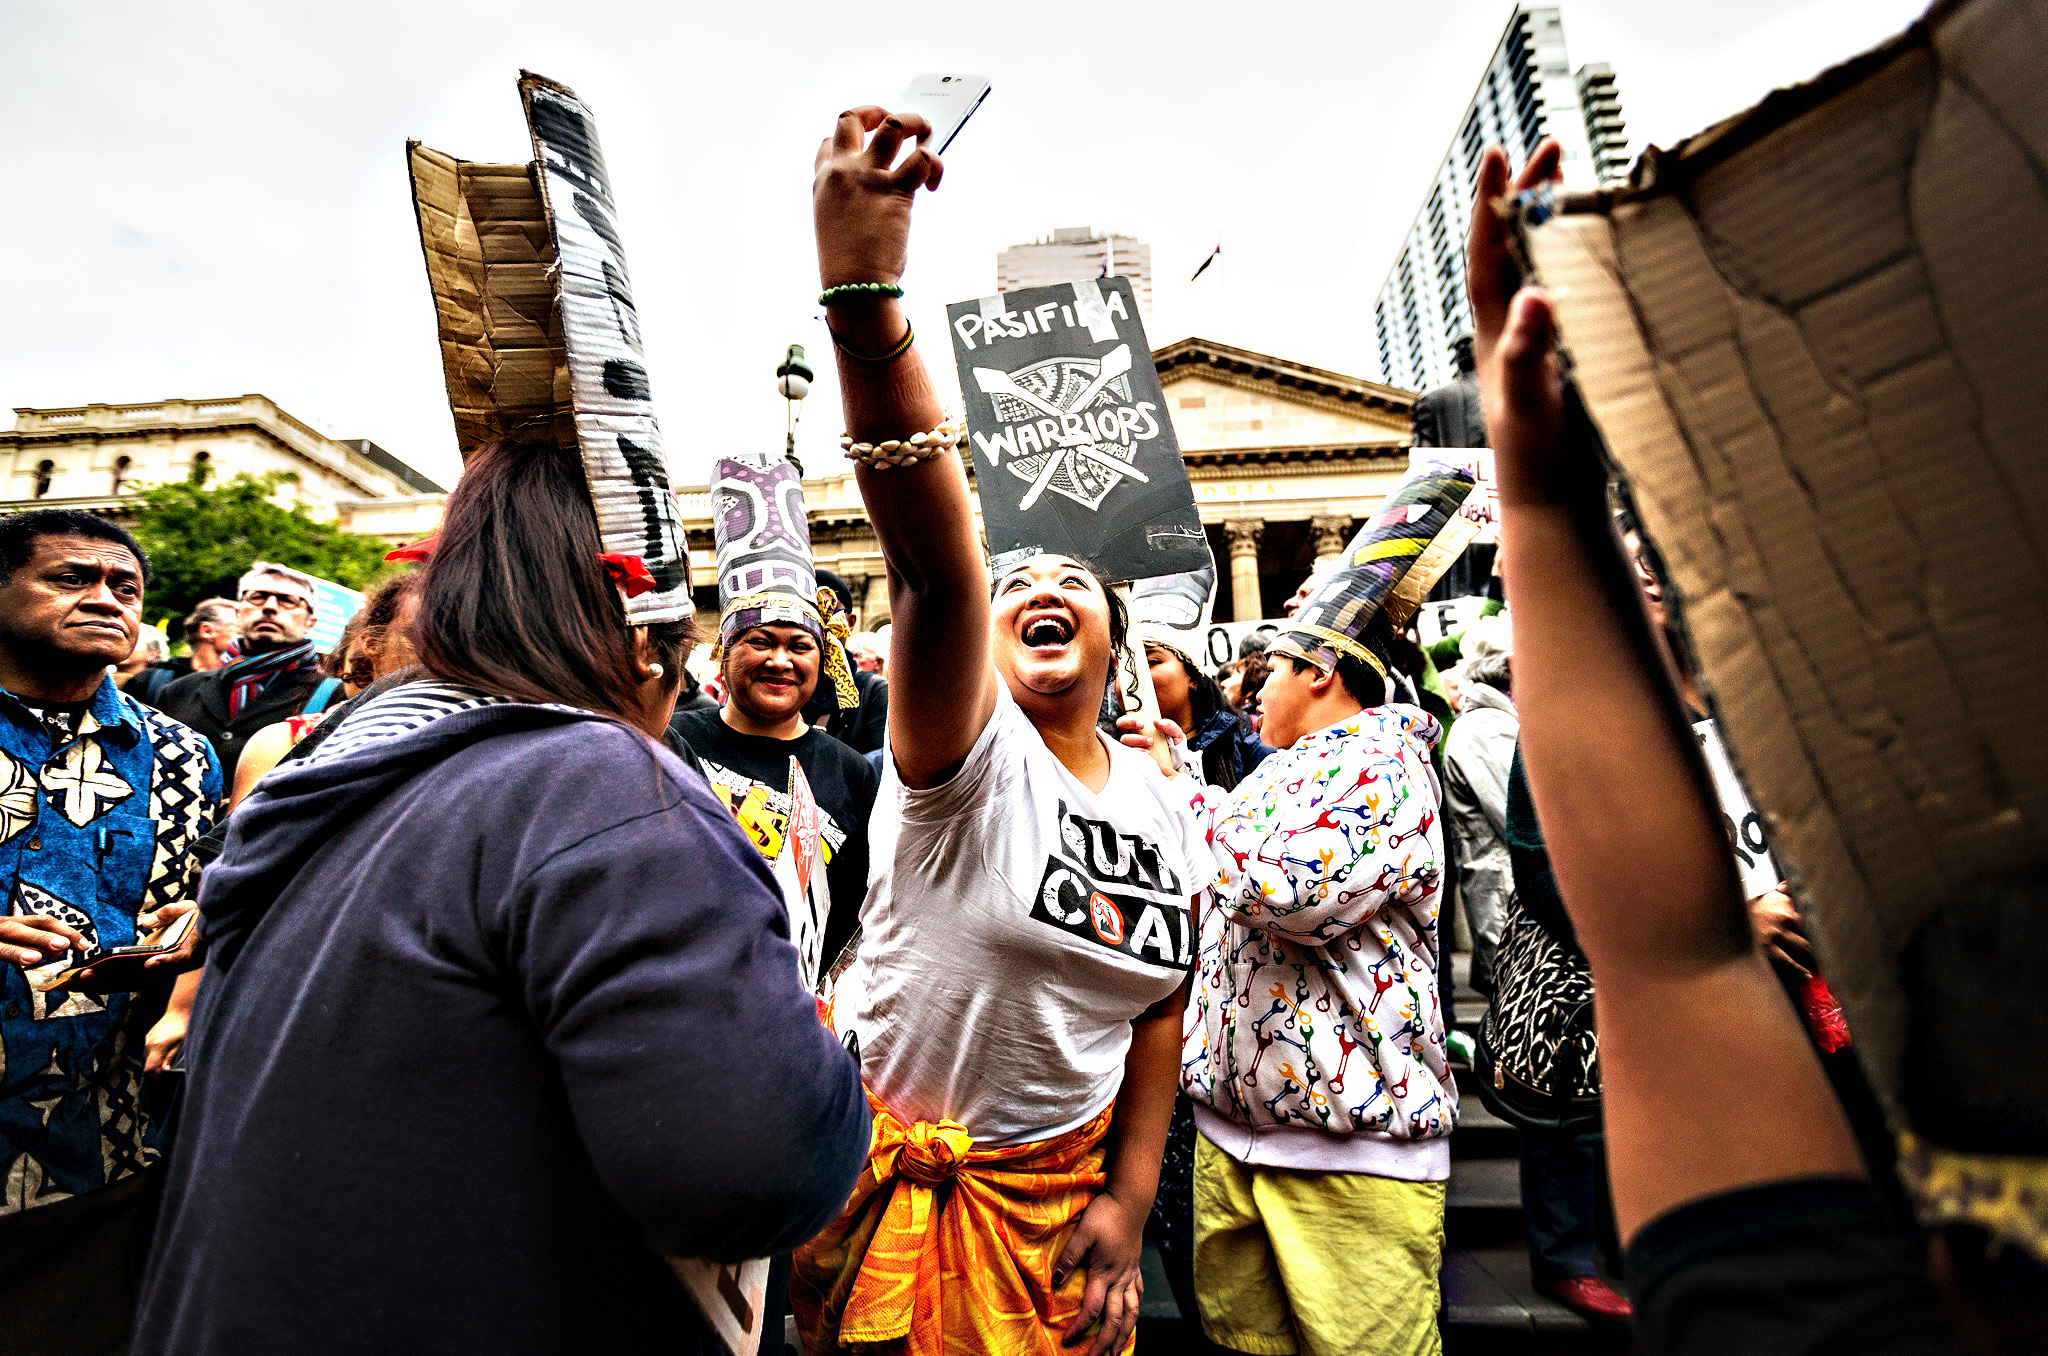 Thousands gather at the steps of the State Library before marching on Friday in Melbourne, Australia. The march is part of a national movement ahead of the United Nations climate summit in Paris on Monday